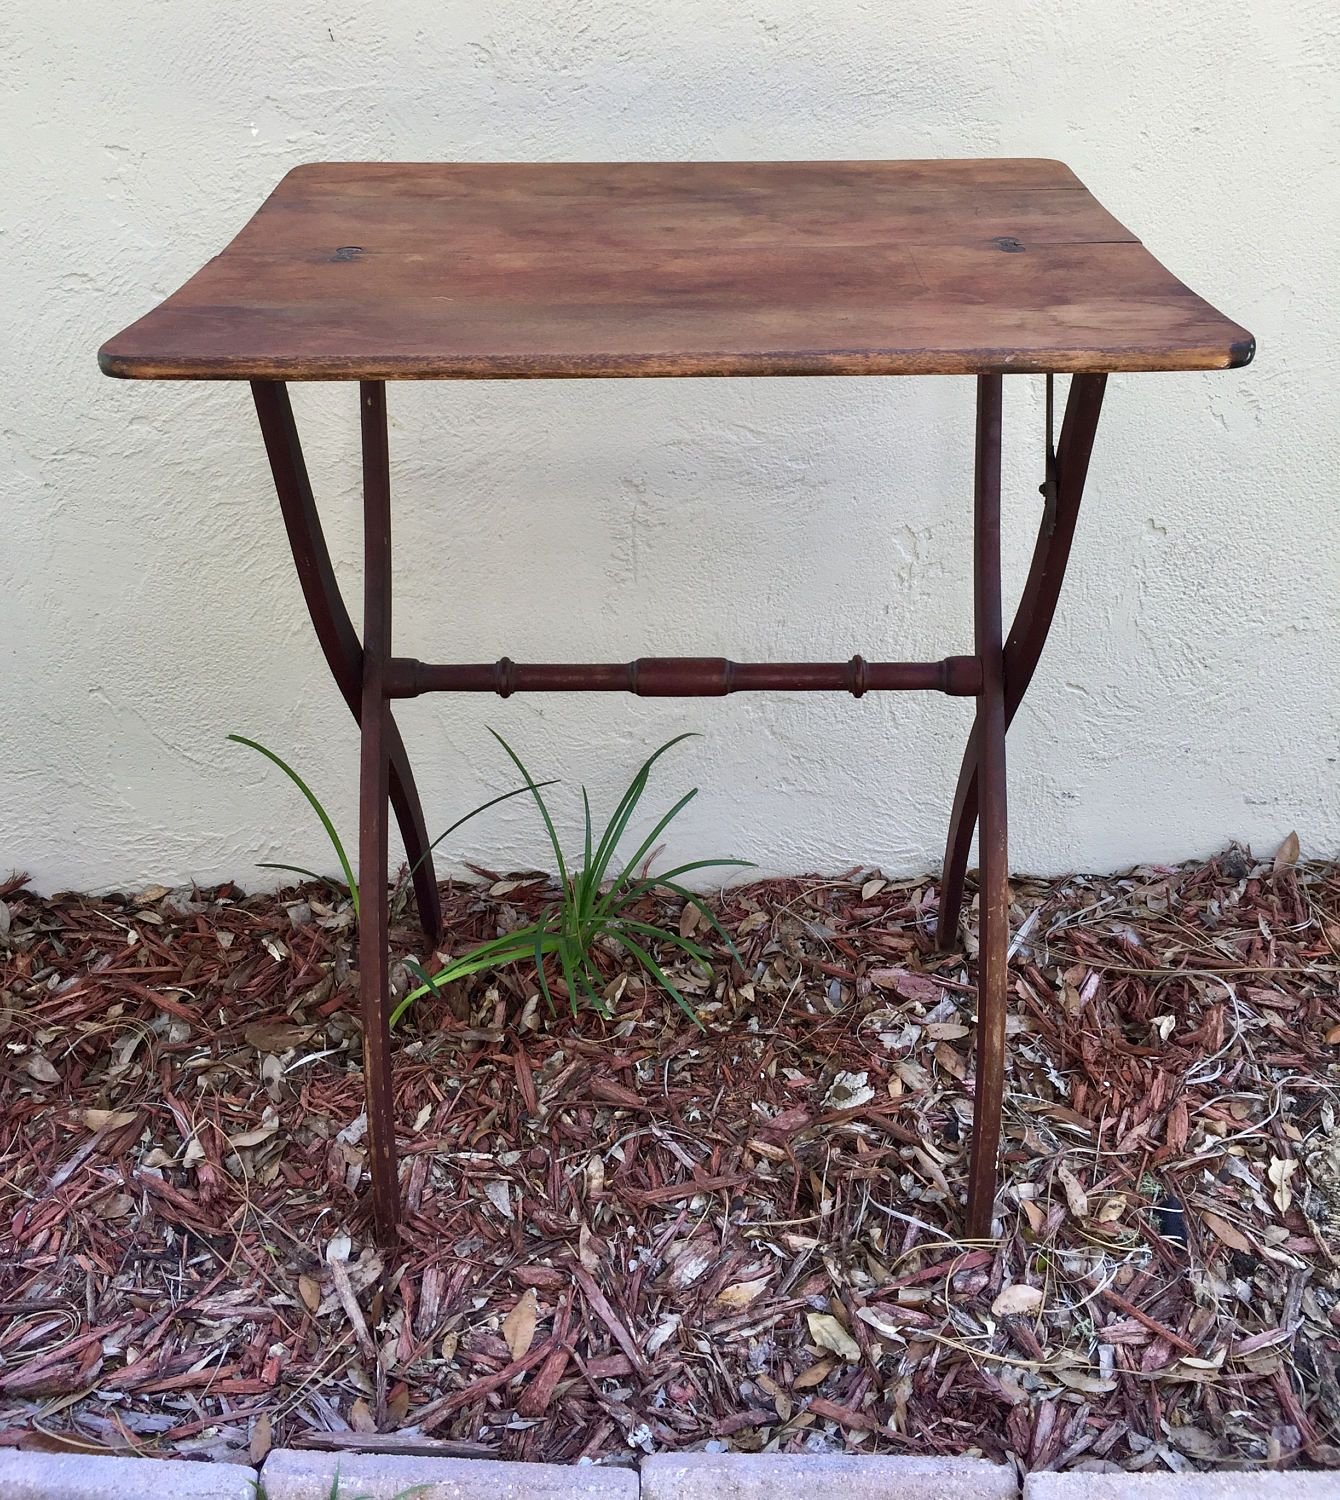 Folding Card Table Campaign Table Wood Table Small Table Etsy Primitive Tables Wood Table Small Tables